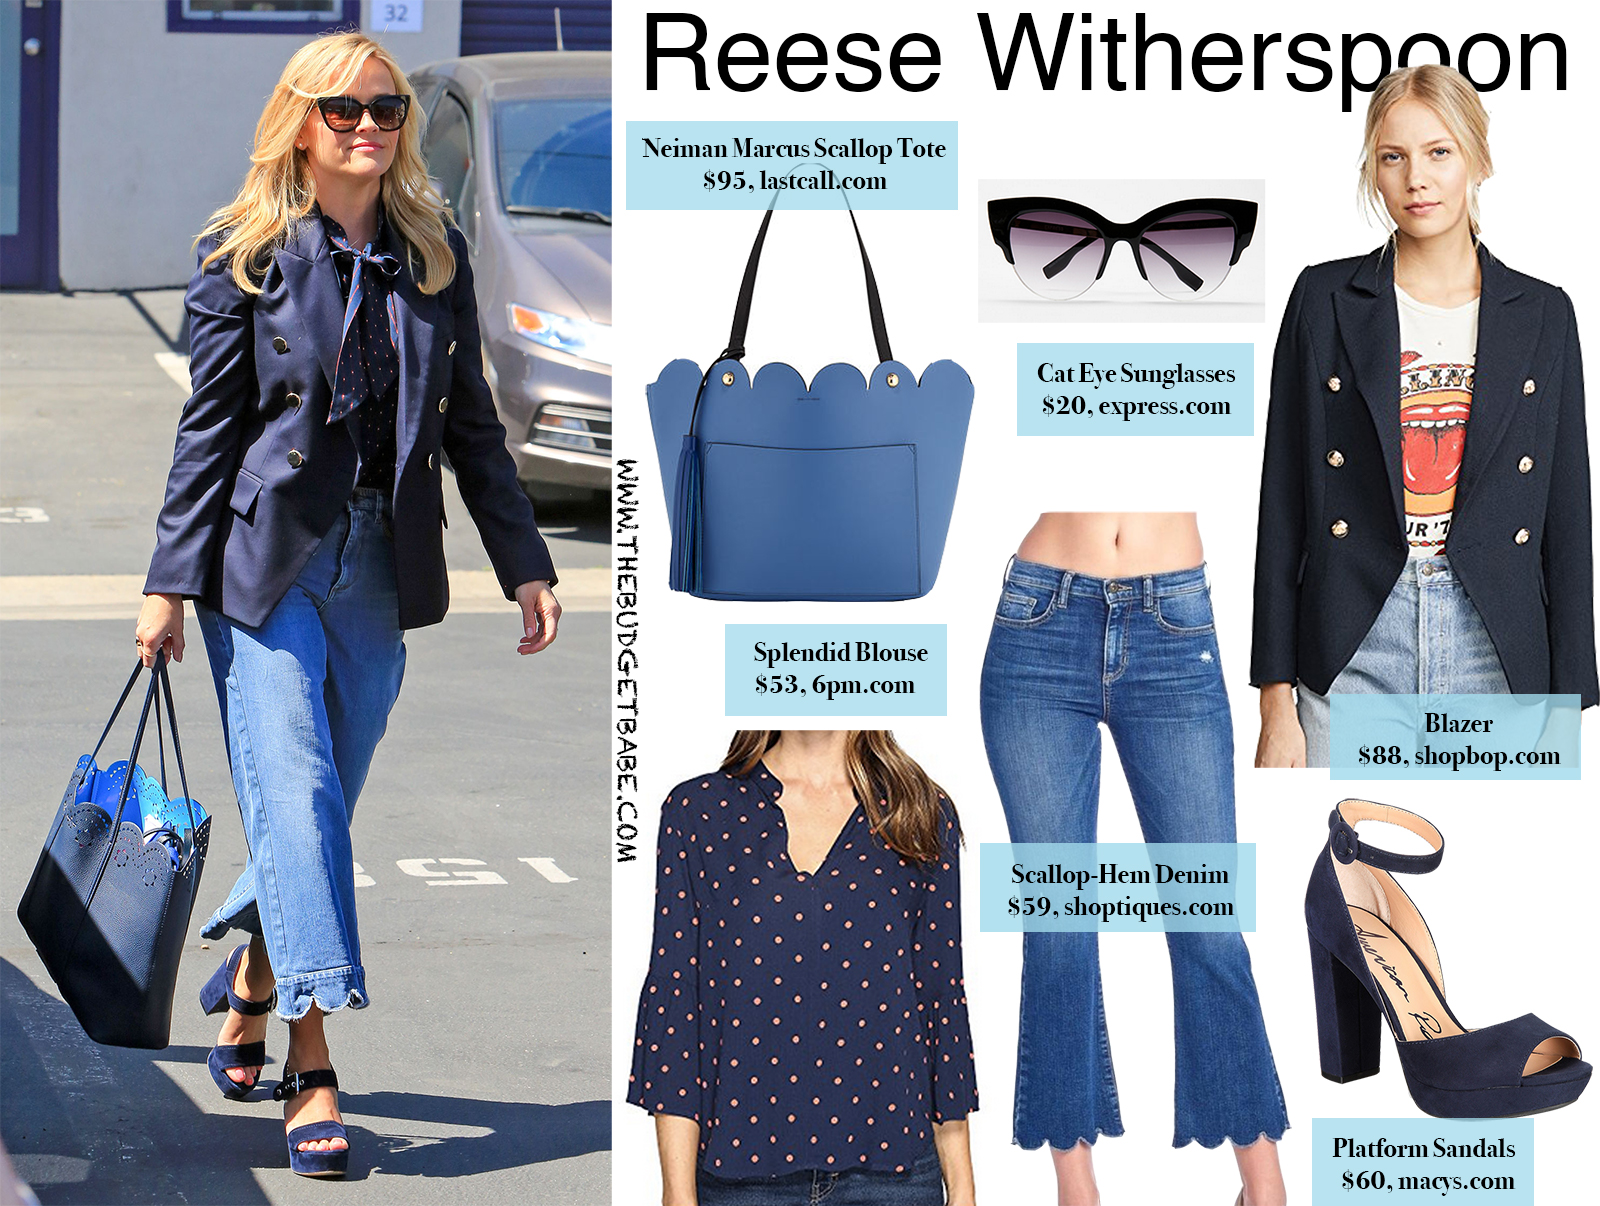 6ddff63ab1 Reese Witherspoon s Scallop-Hem Denim and Blazer